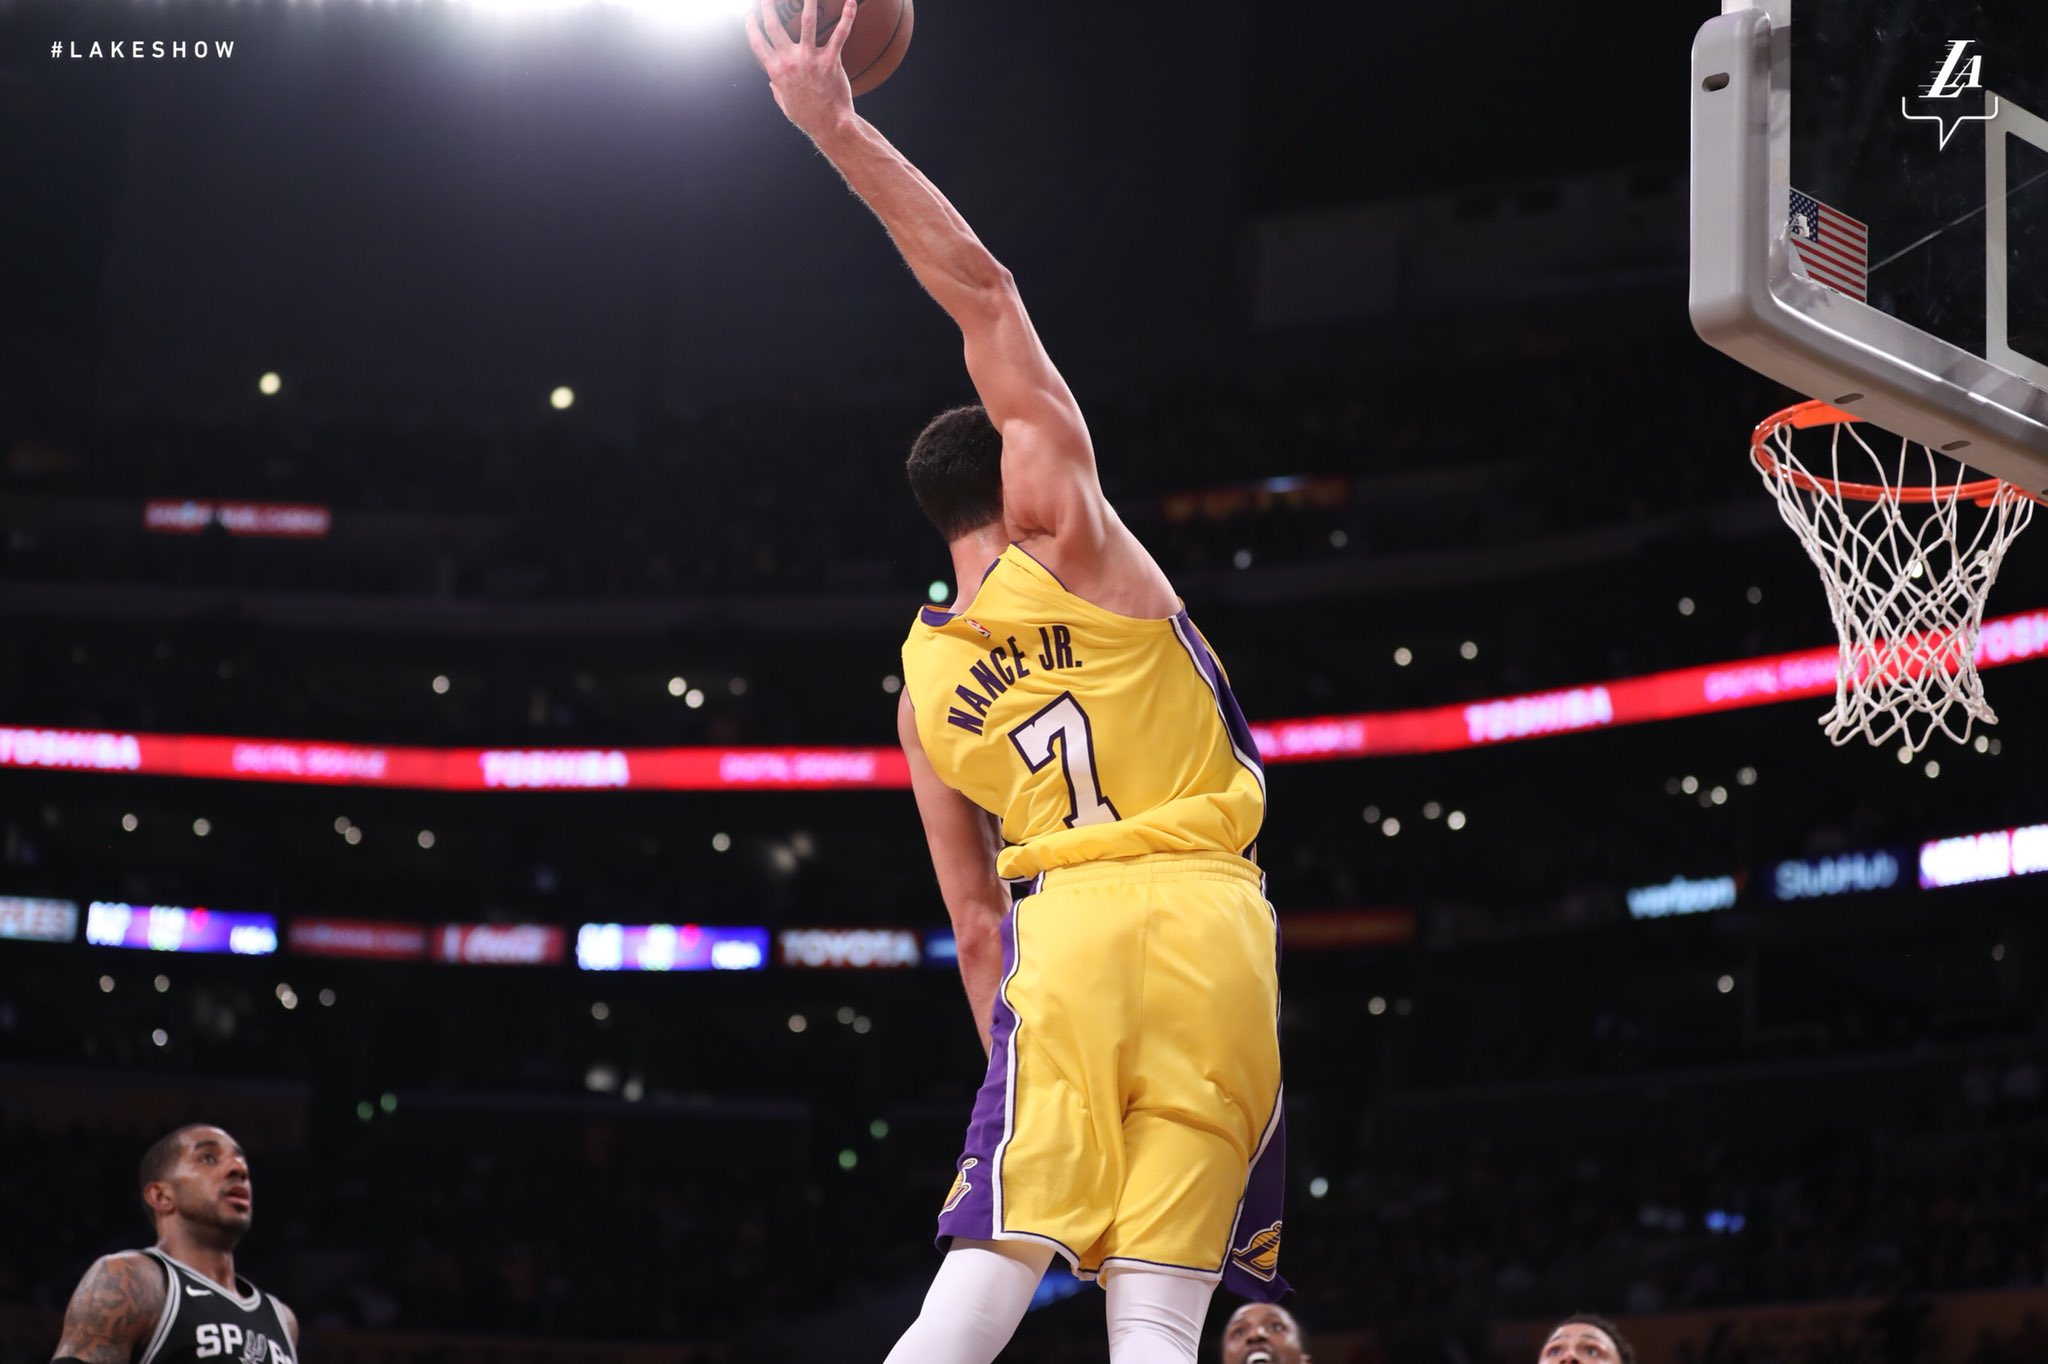 Reach all the way back for it Mr. Nance!! #LakeShow. https://t.co/5Oi5Z8Gcex